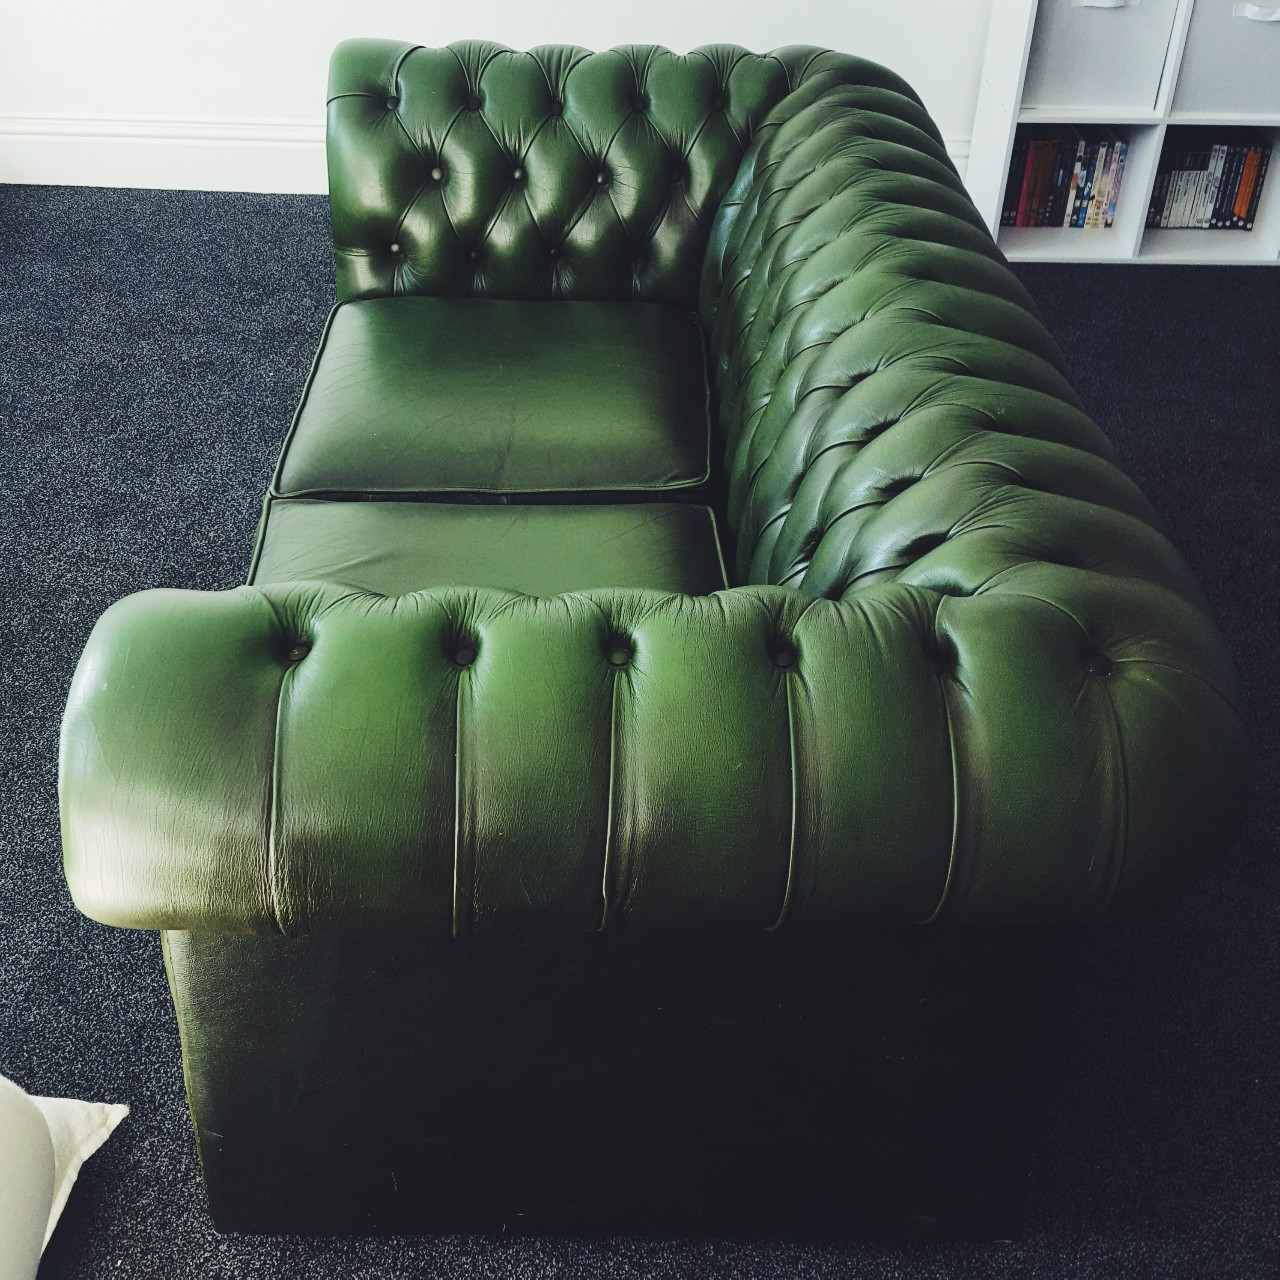 Super Antique Forest Green Leather Double Sofa Pretty Depop Gmtry Best Dining Table And Chair Ideas Images Gmtryco